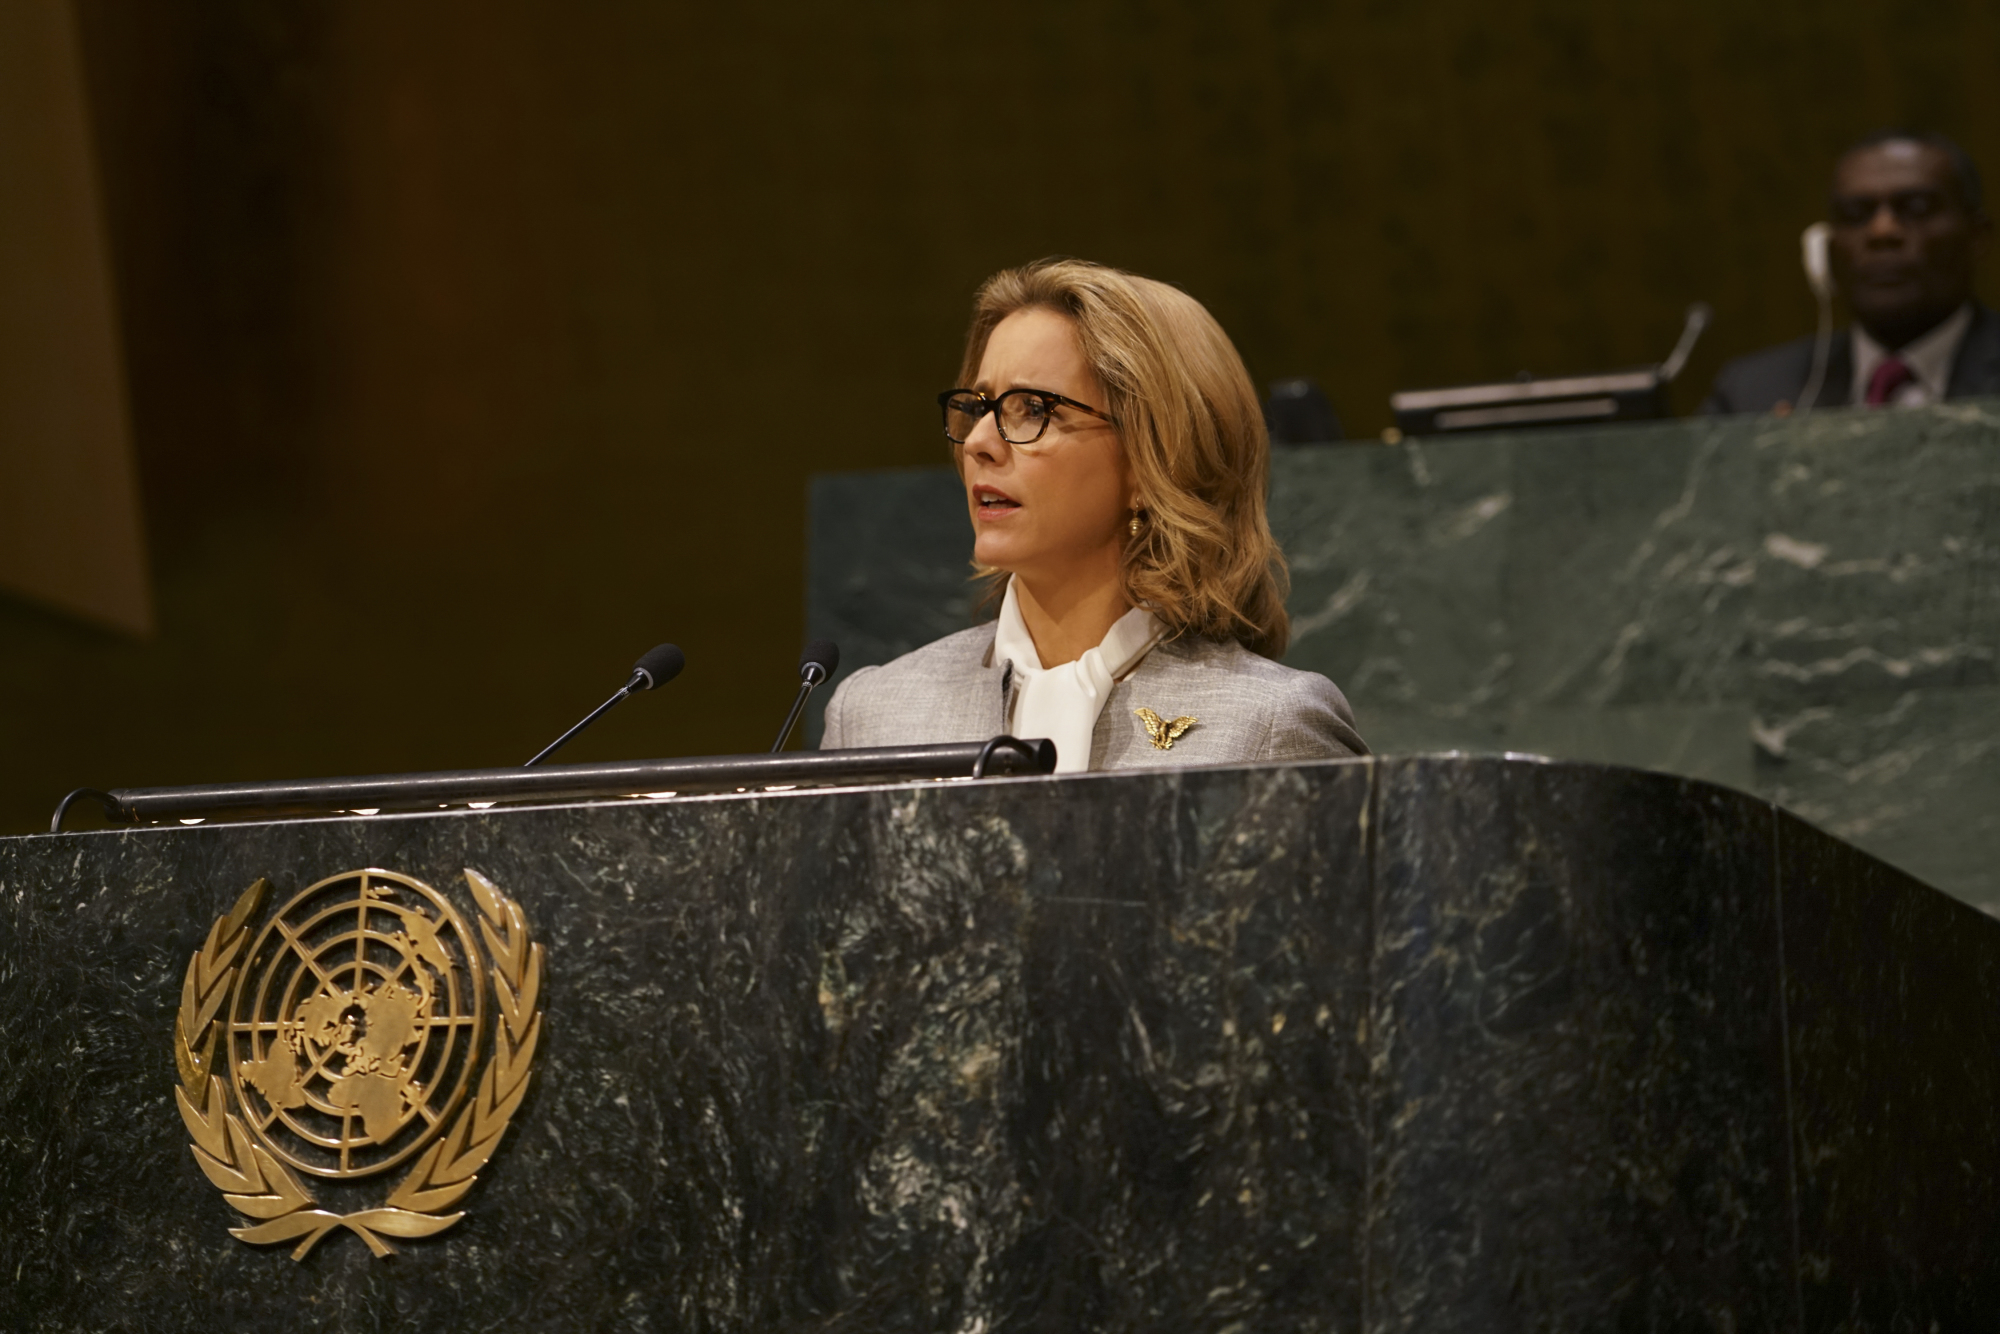 Bess addressed the United Nations for the first time.